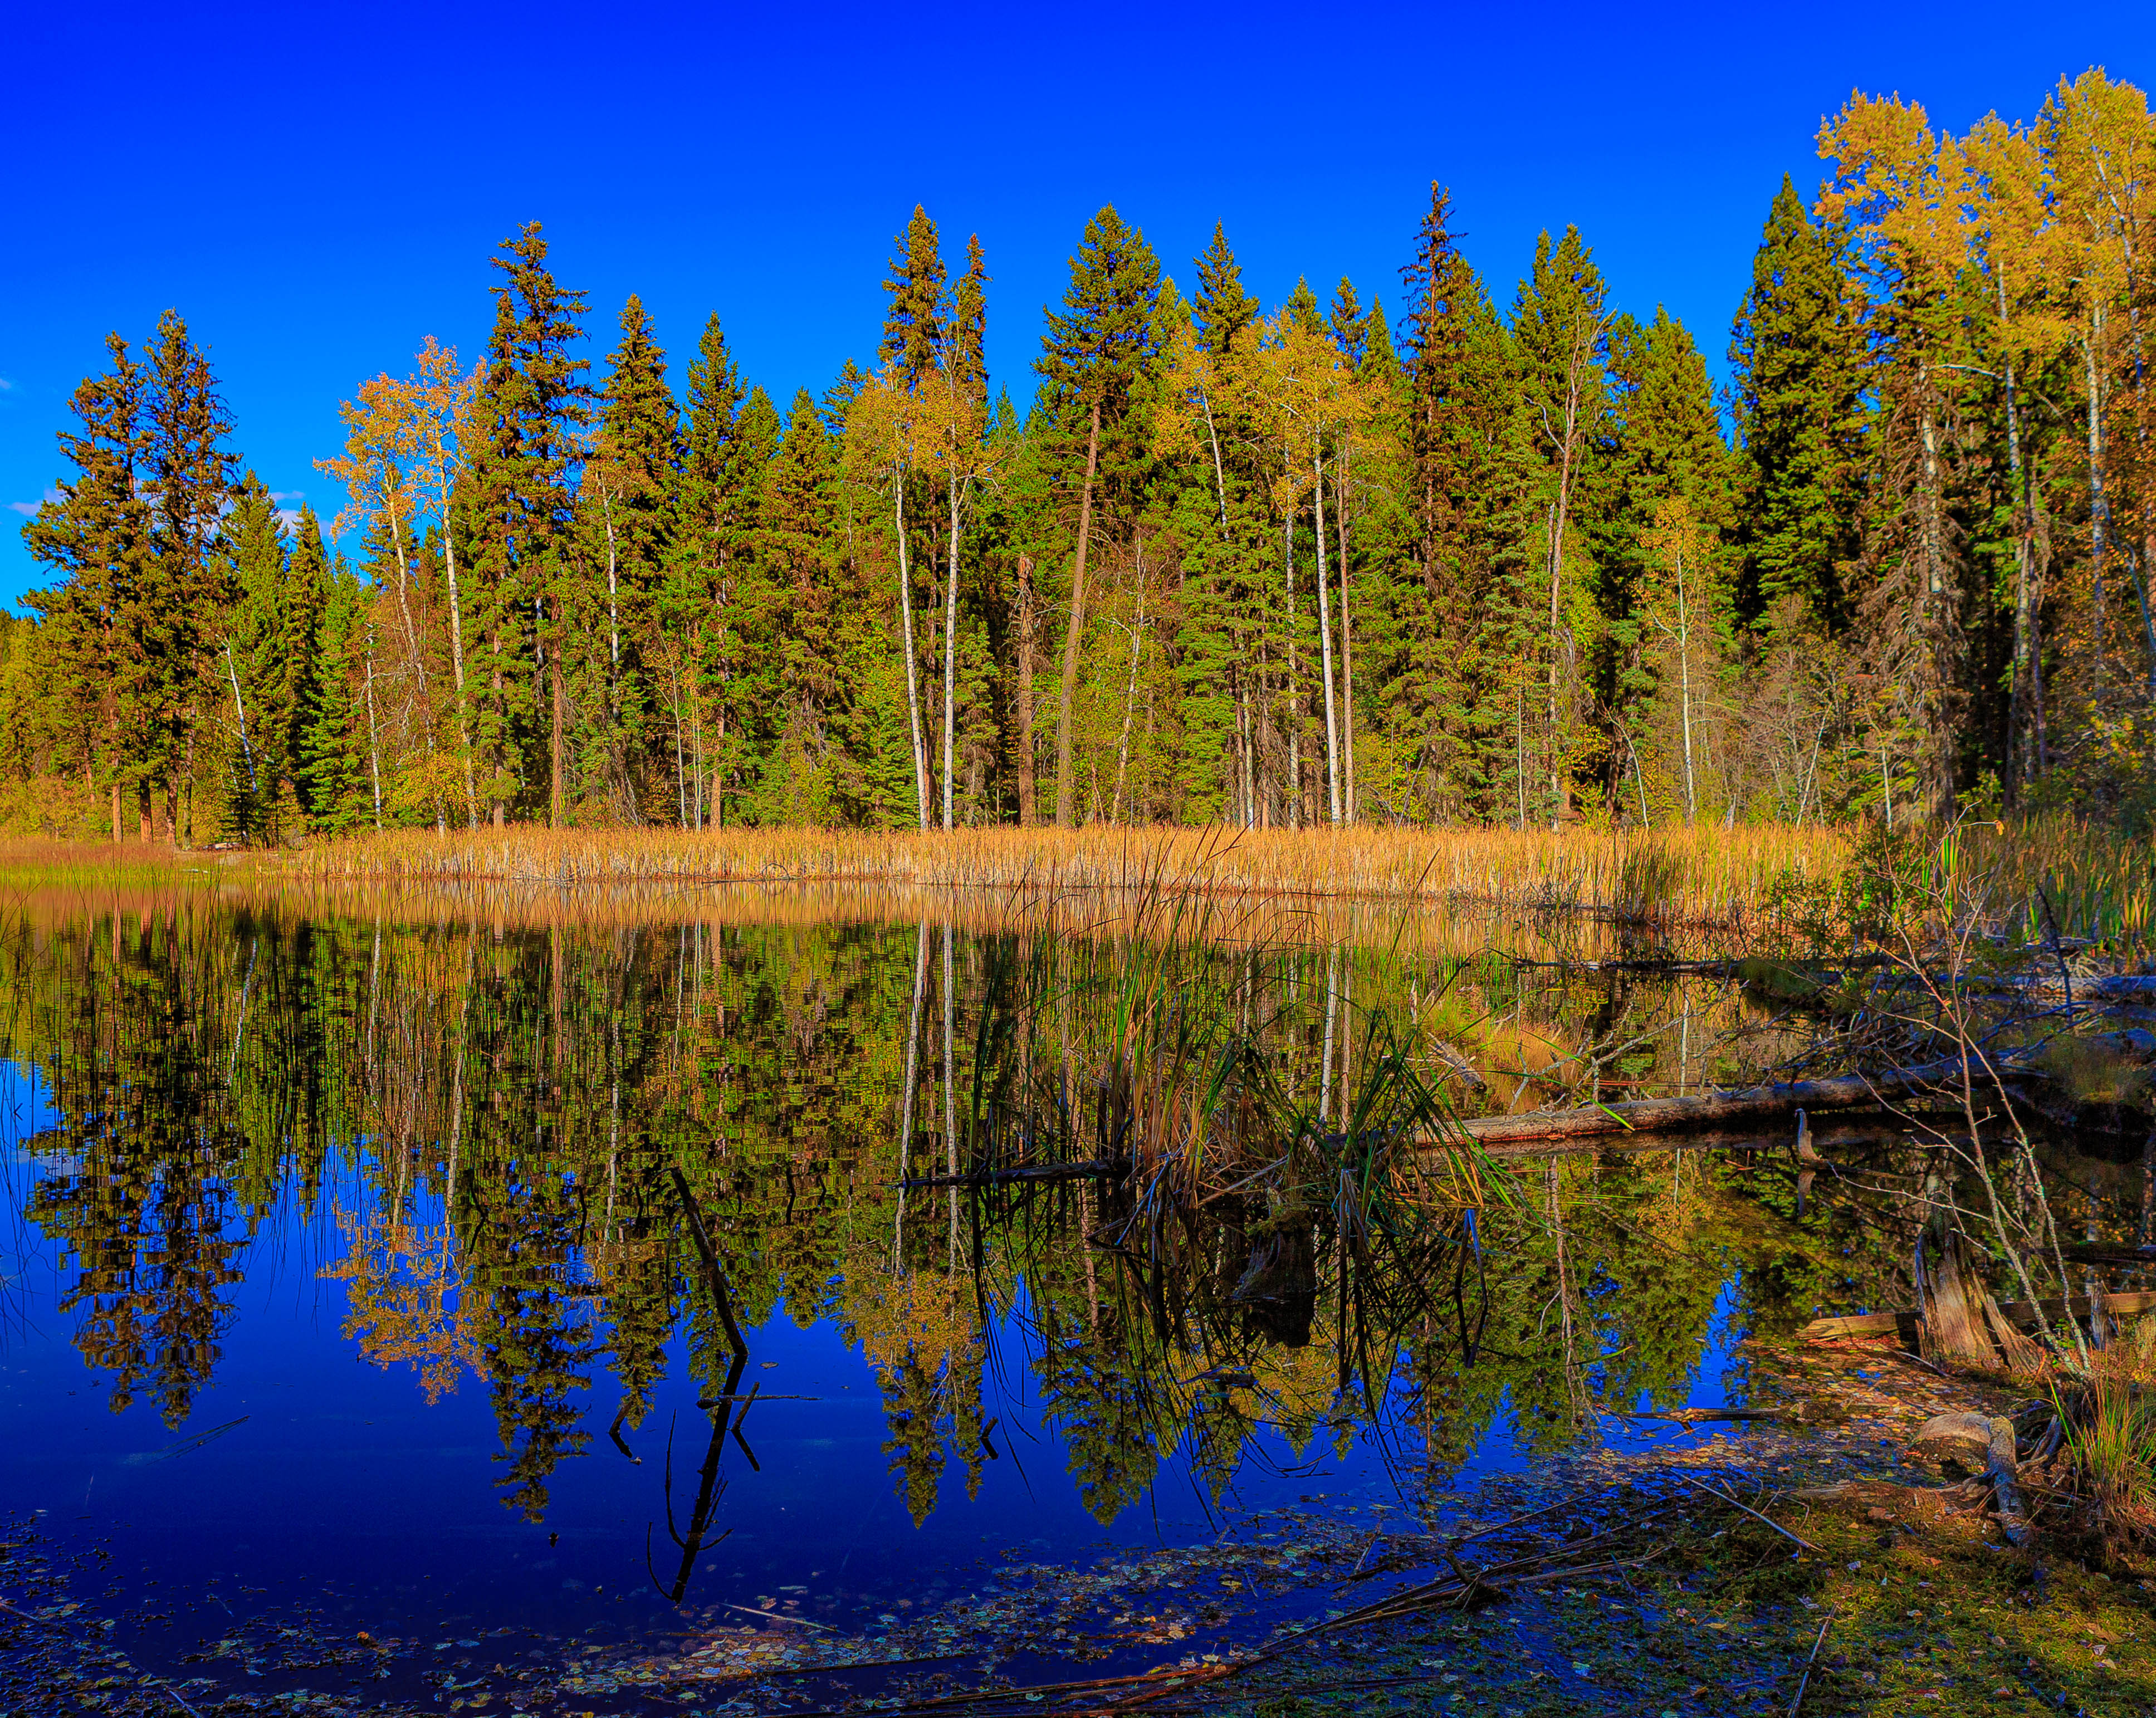 Download mobile wallpaper Landscape, Nature, Trees, Lake, Reflection, Forest for free.